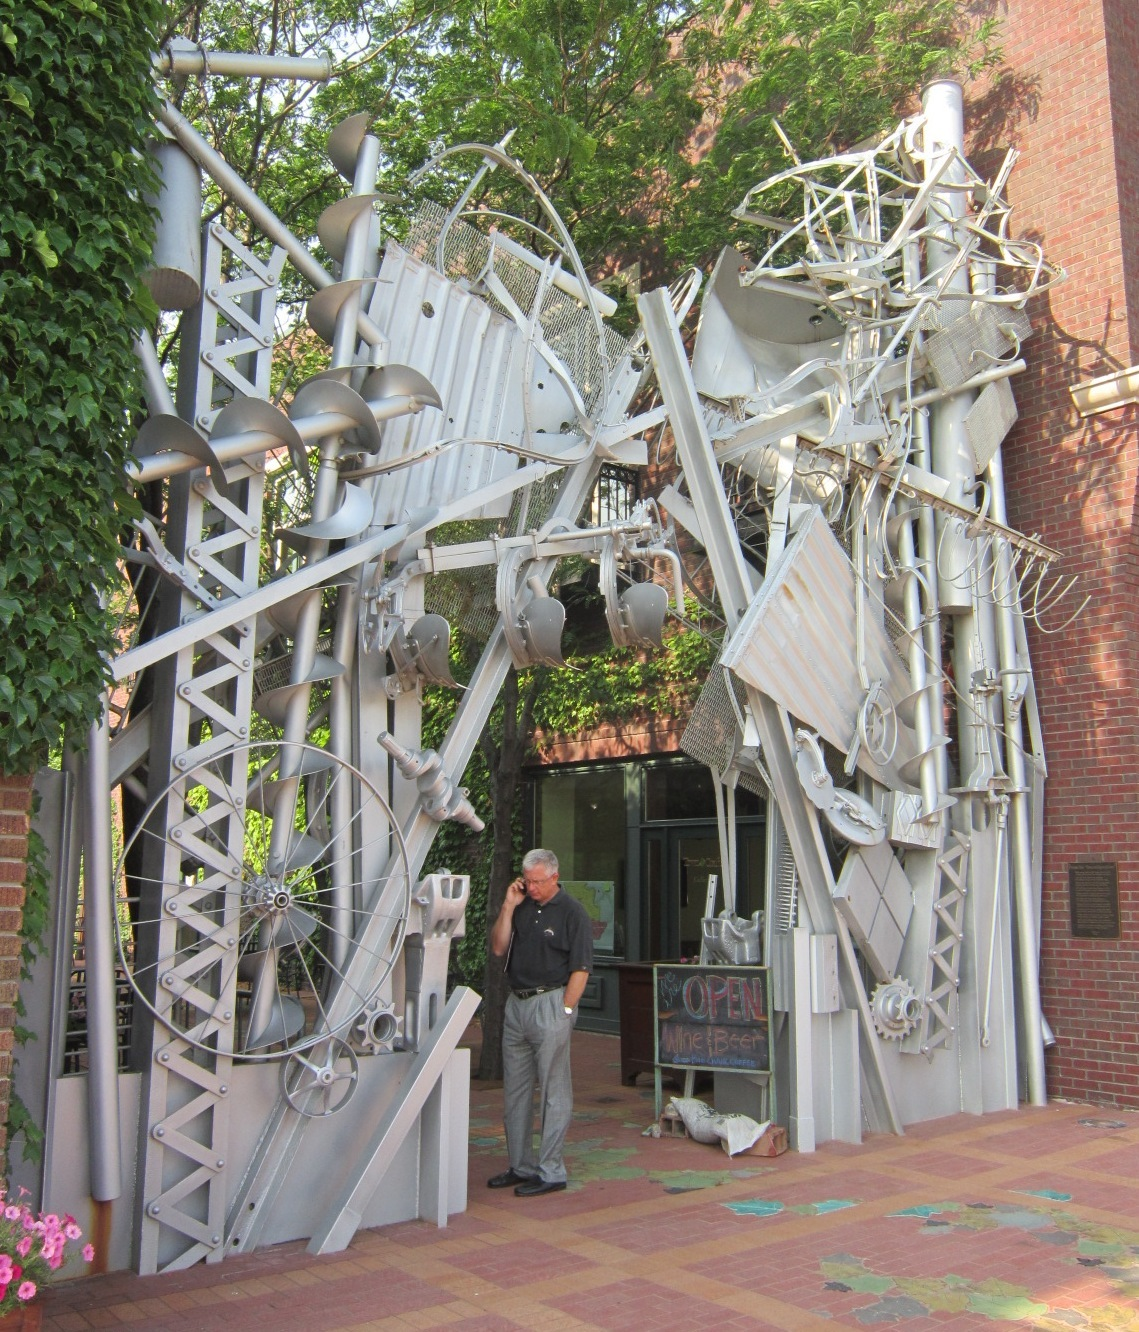 Jim Miller At Reconfiguration Arch Perry.JPG